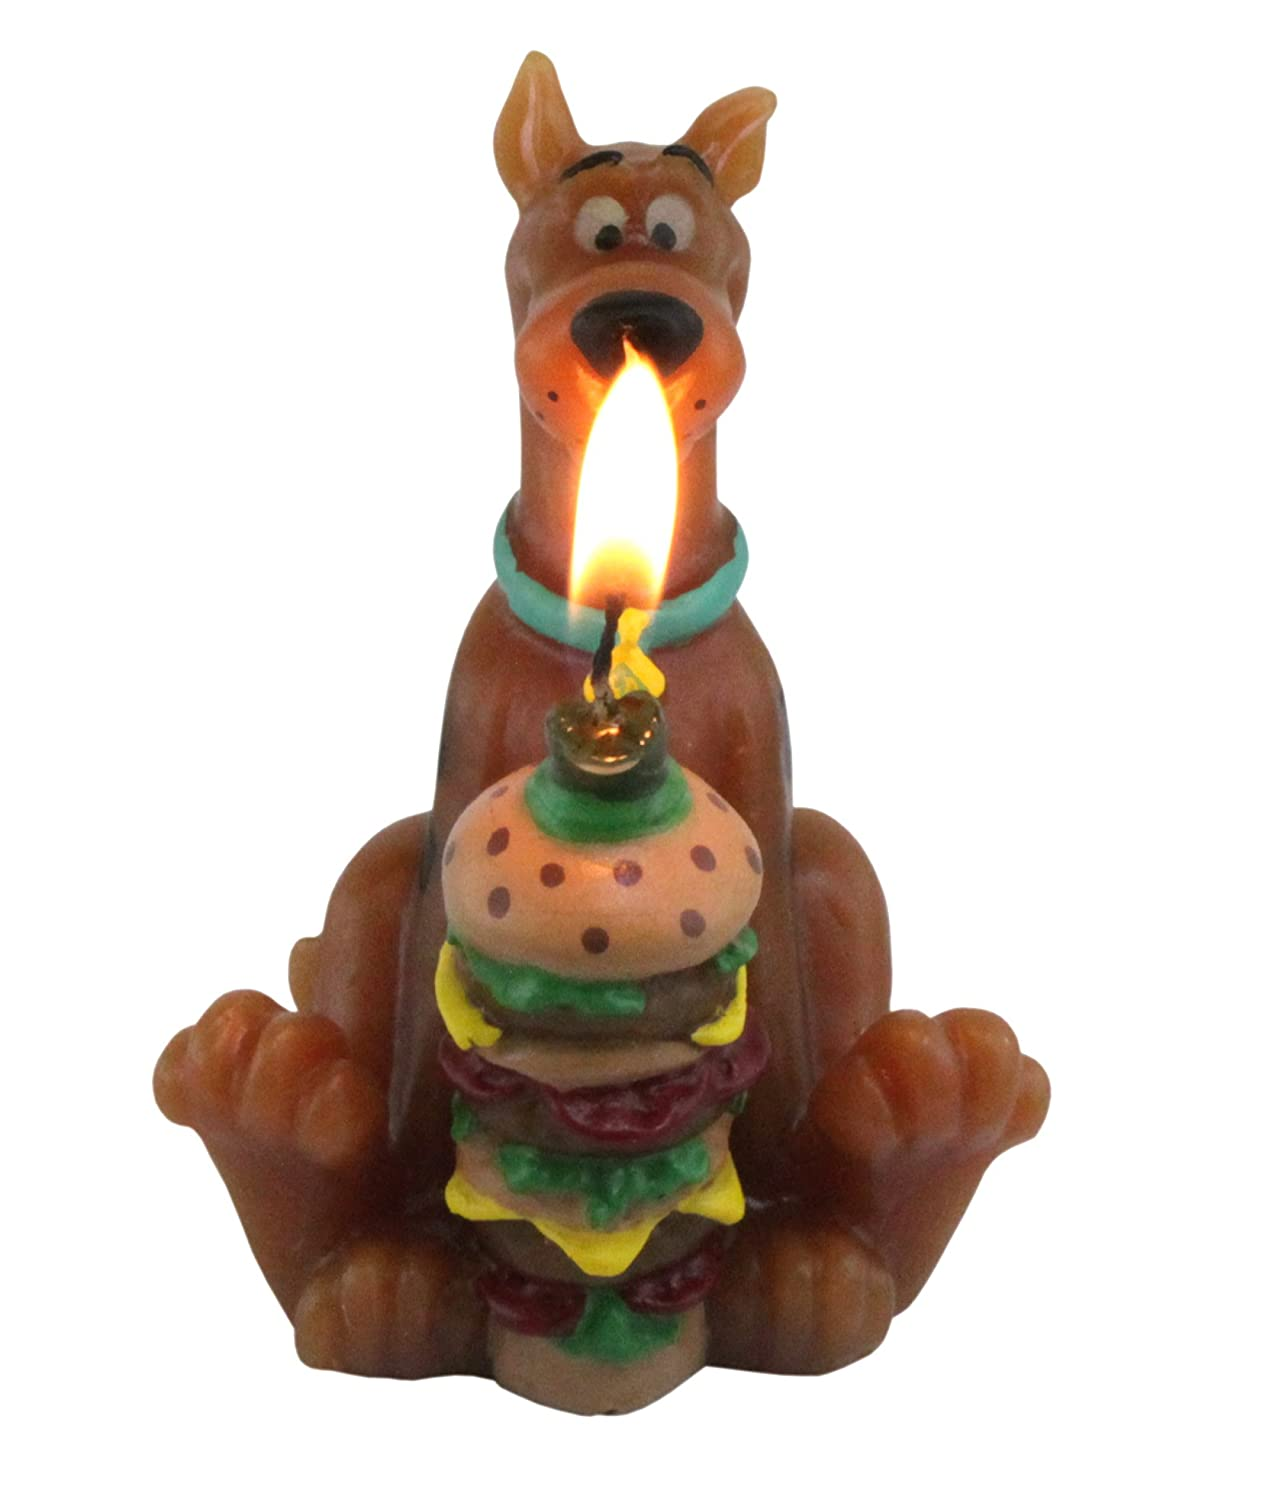 WILTON Scooby Doo Candle Bougie 2811-3206